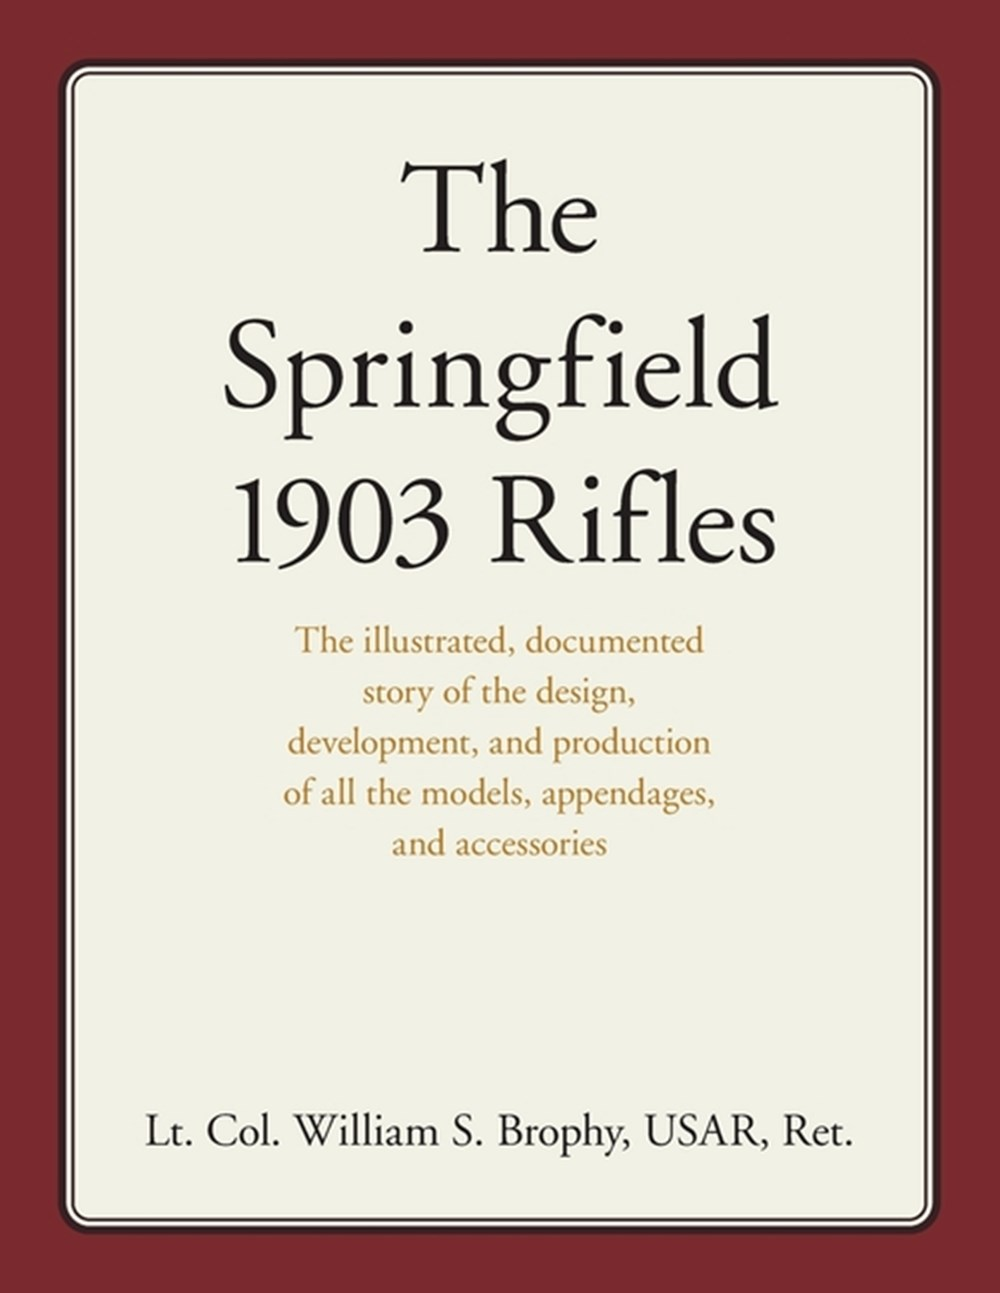 Springfield 1903 Rifles The illustrated, documented story of the design, development, and production